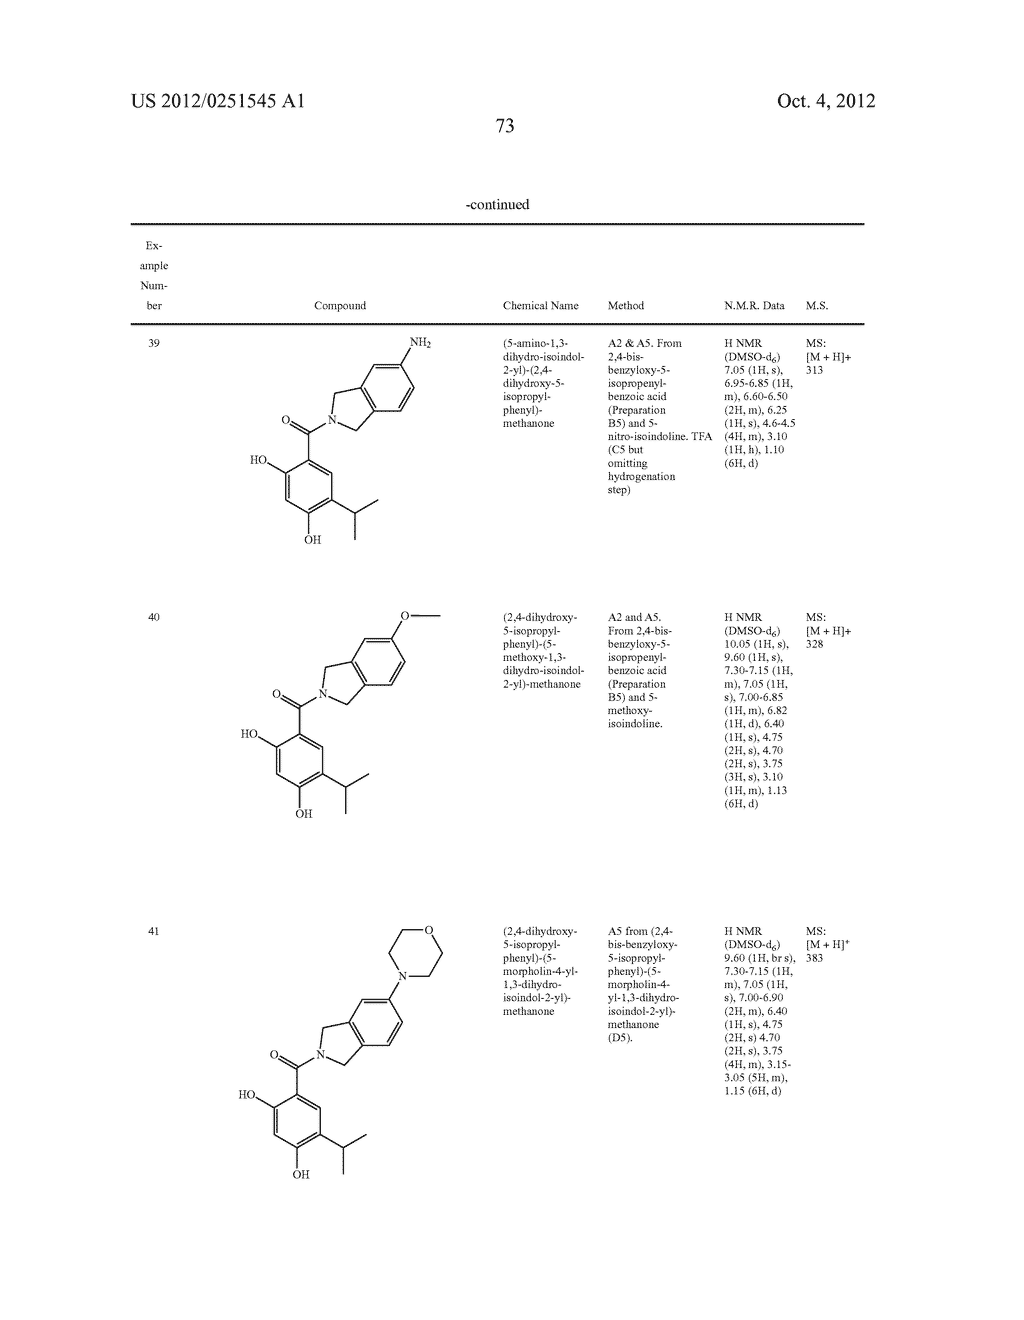 Therapeutic Combinations Of Hydroxybenzamide Derivatives As Inhibitors Of     HSP90 - diagram, schematic, and image 74